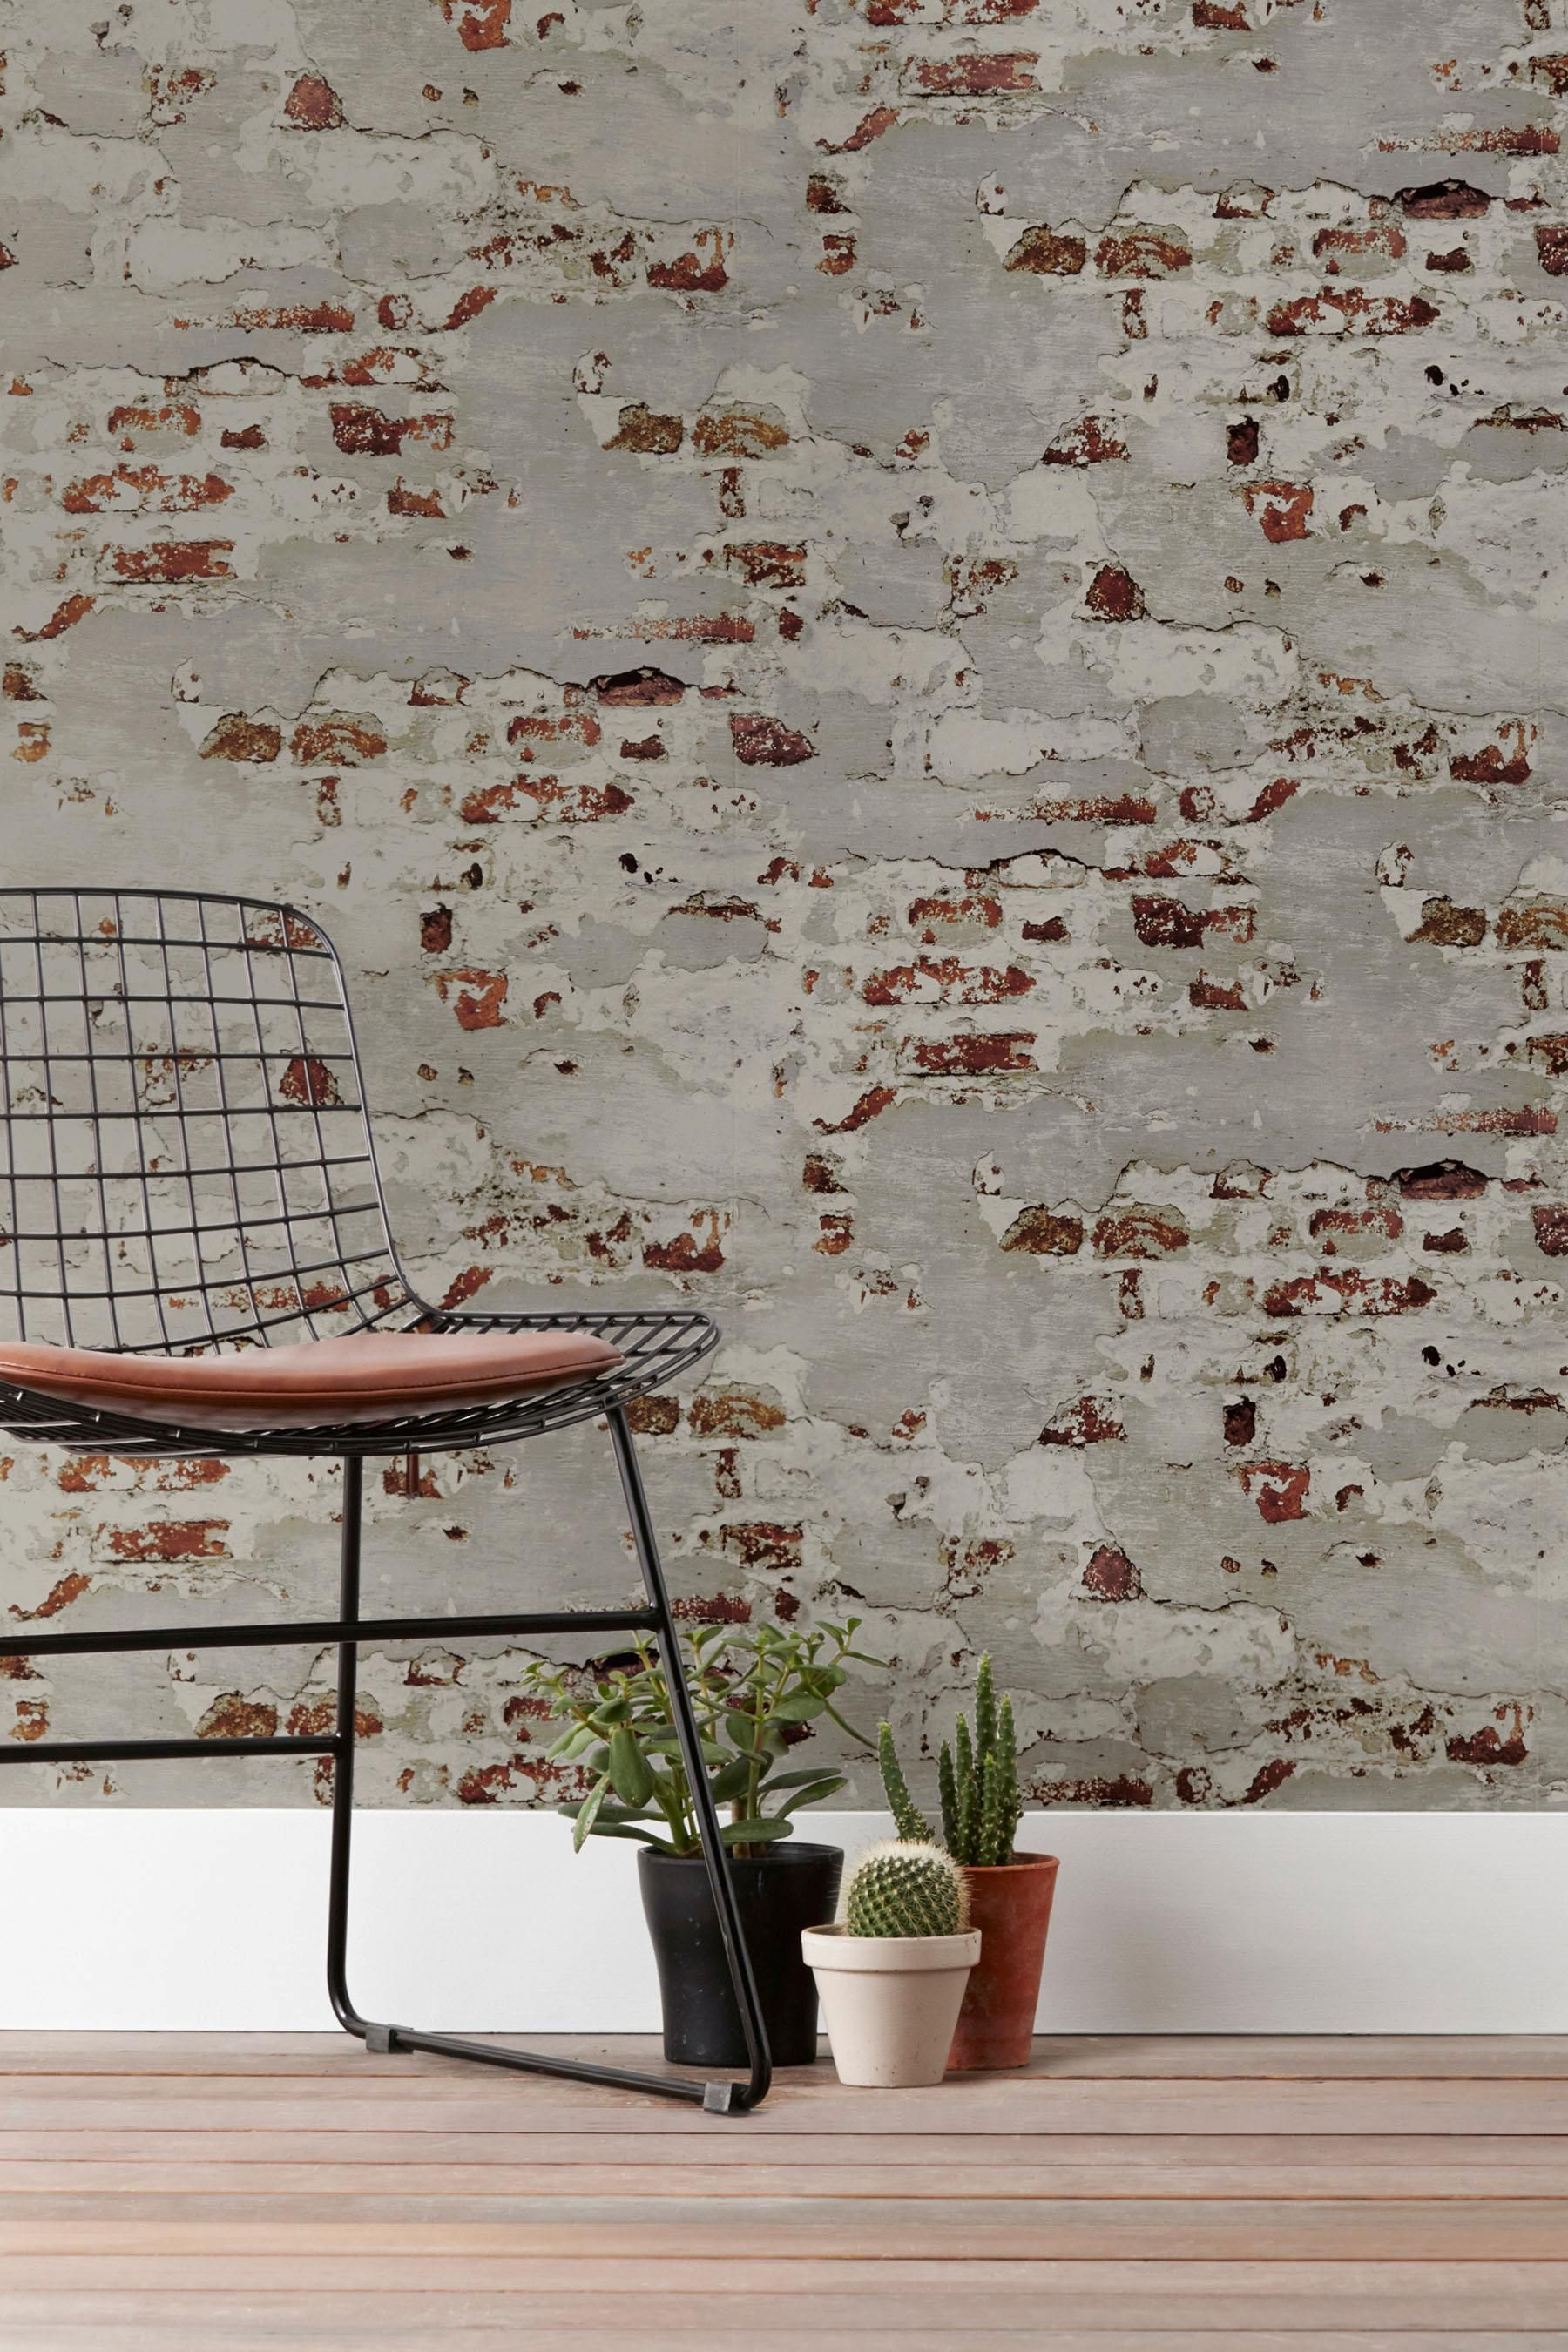 Buy Paste The Wall Distressed Bricks Wallpaper from the Next UK online shop